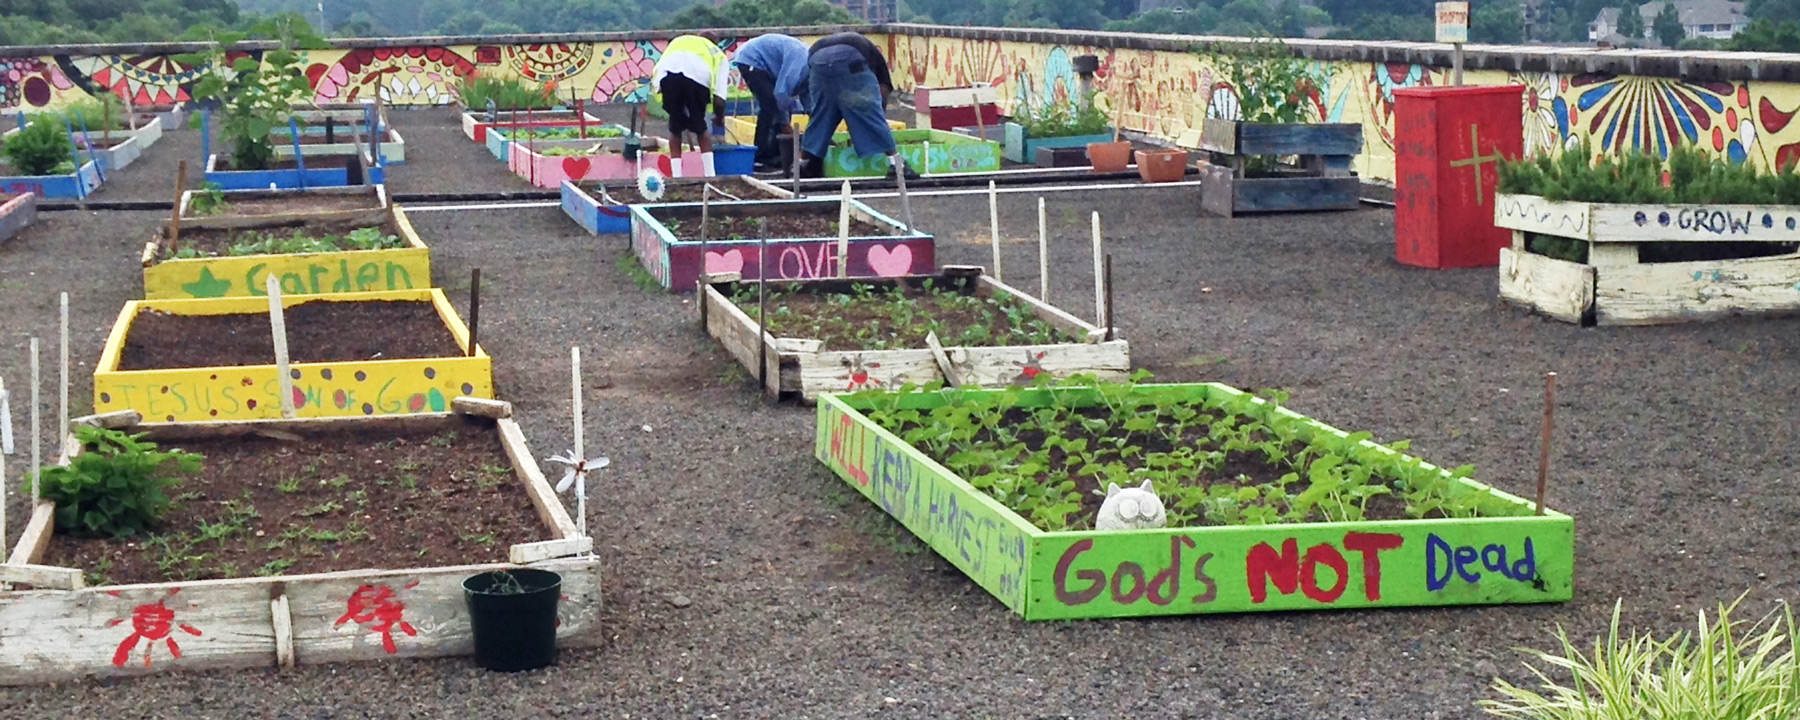 The Metro Atlanta Task Force For The Homeless Maintains A Rooftop Garden Of  80 Colorfully Painted Raised Beds Of Tender Lettuces, Collard Greens, Kale,  ...